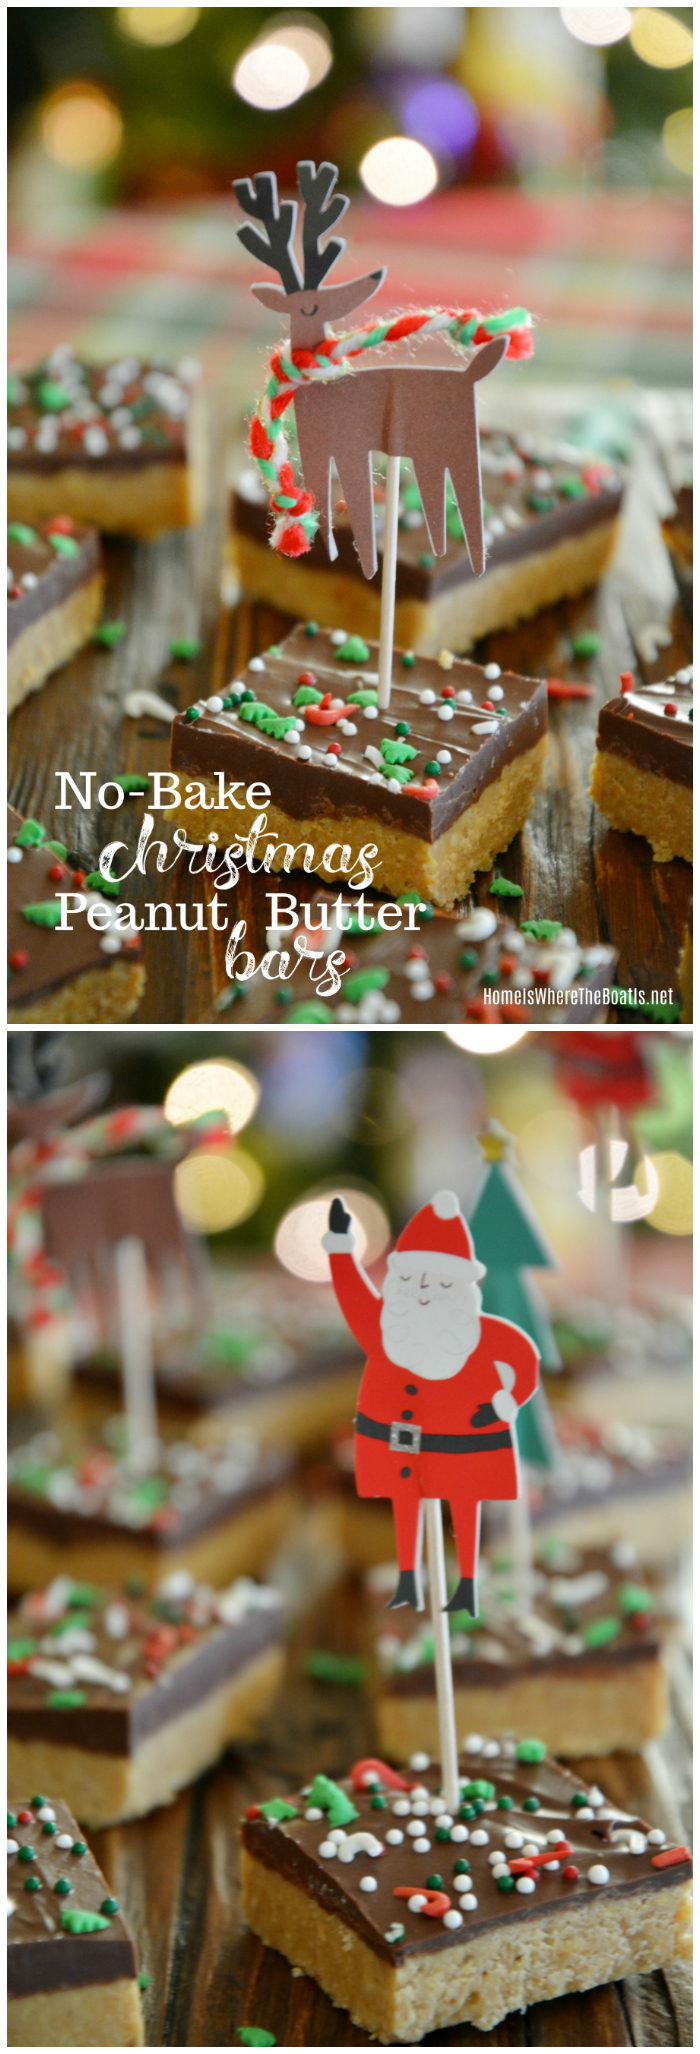 An Easy No-Bake Treat: Christmas Peanut Butter Bars | ©homeiswheretheboatis.net #christmas #easy #nobake #recipes